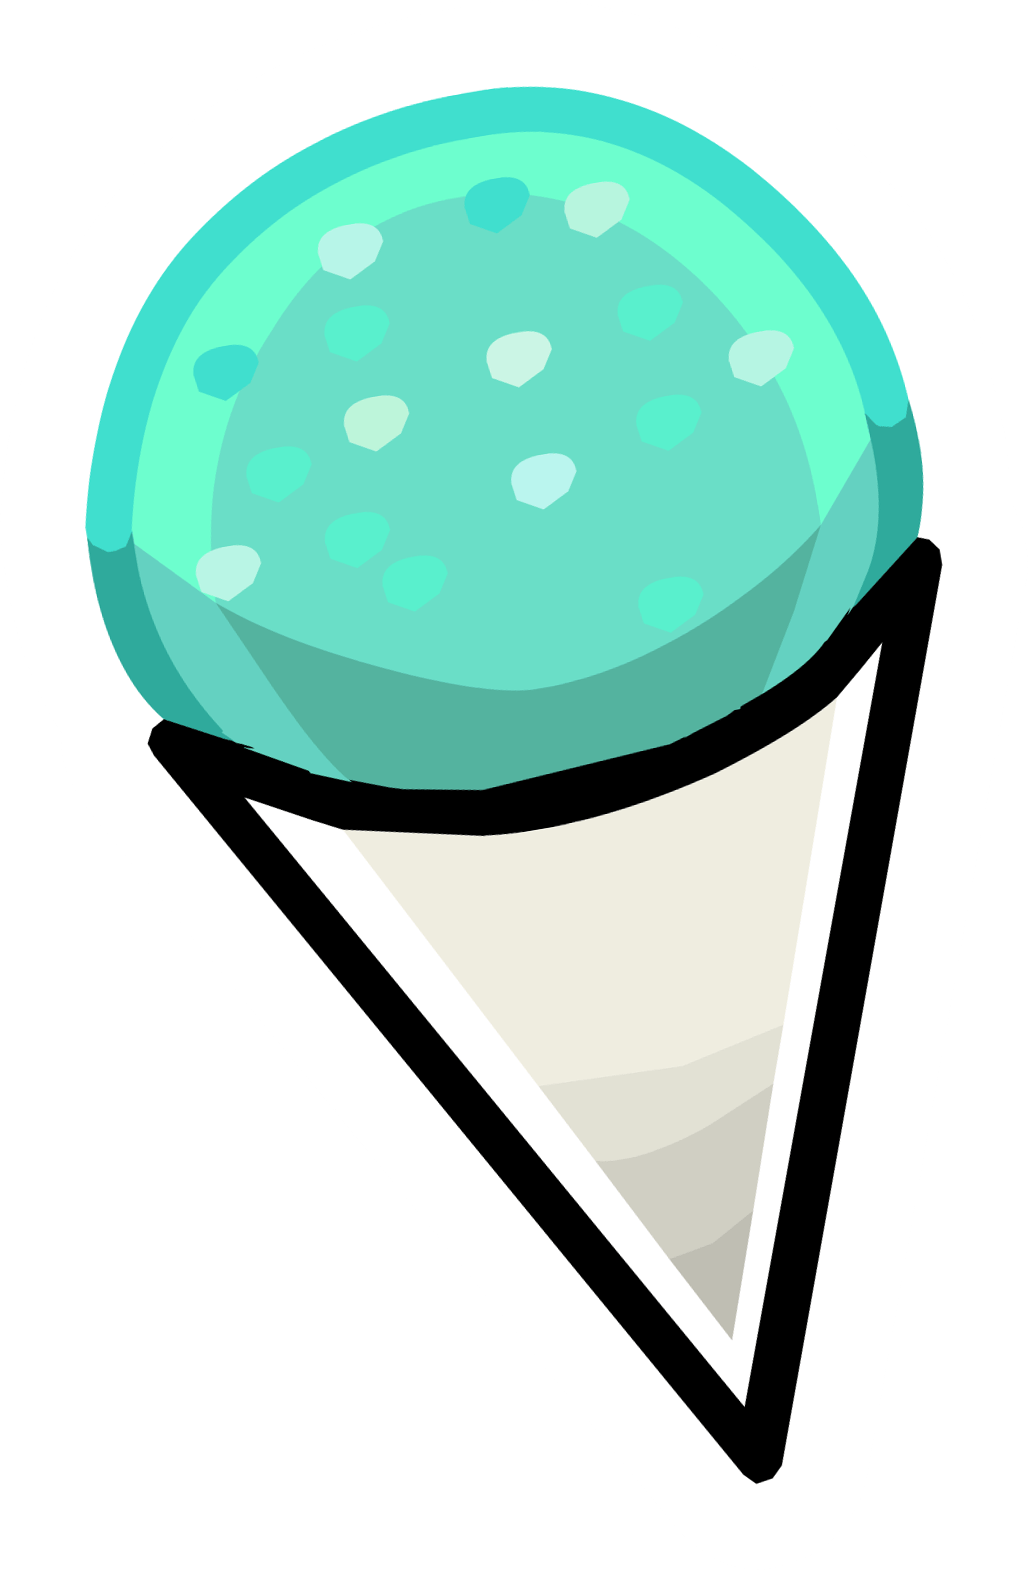 hight resolution of snow cones logo clipart